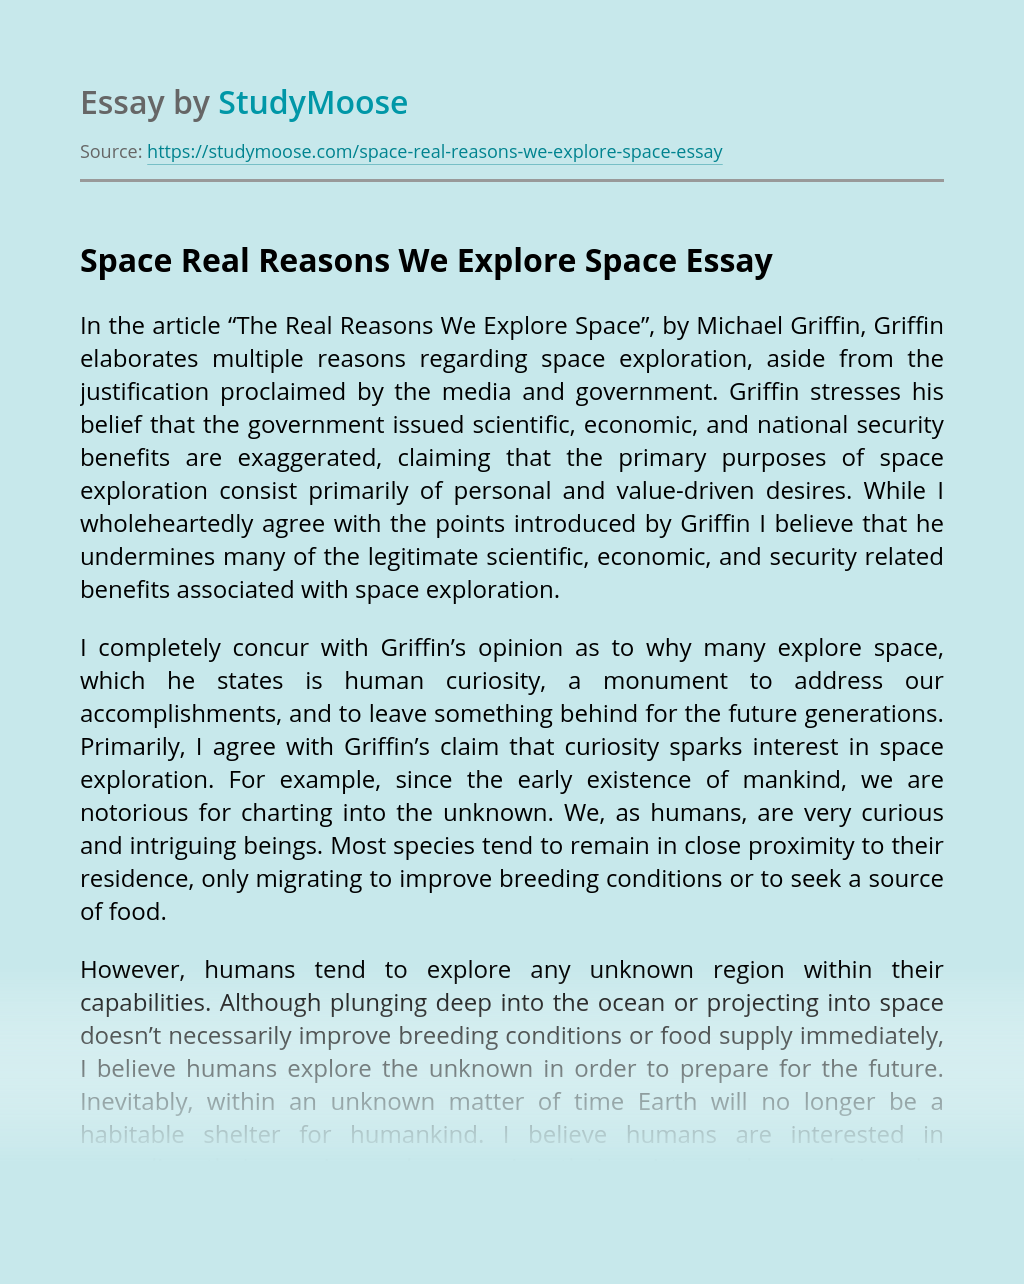 Space Real Reasons We Explore Space